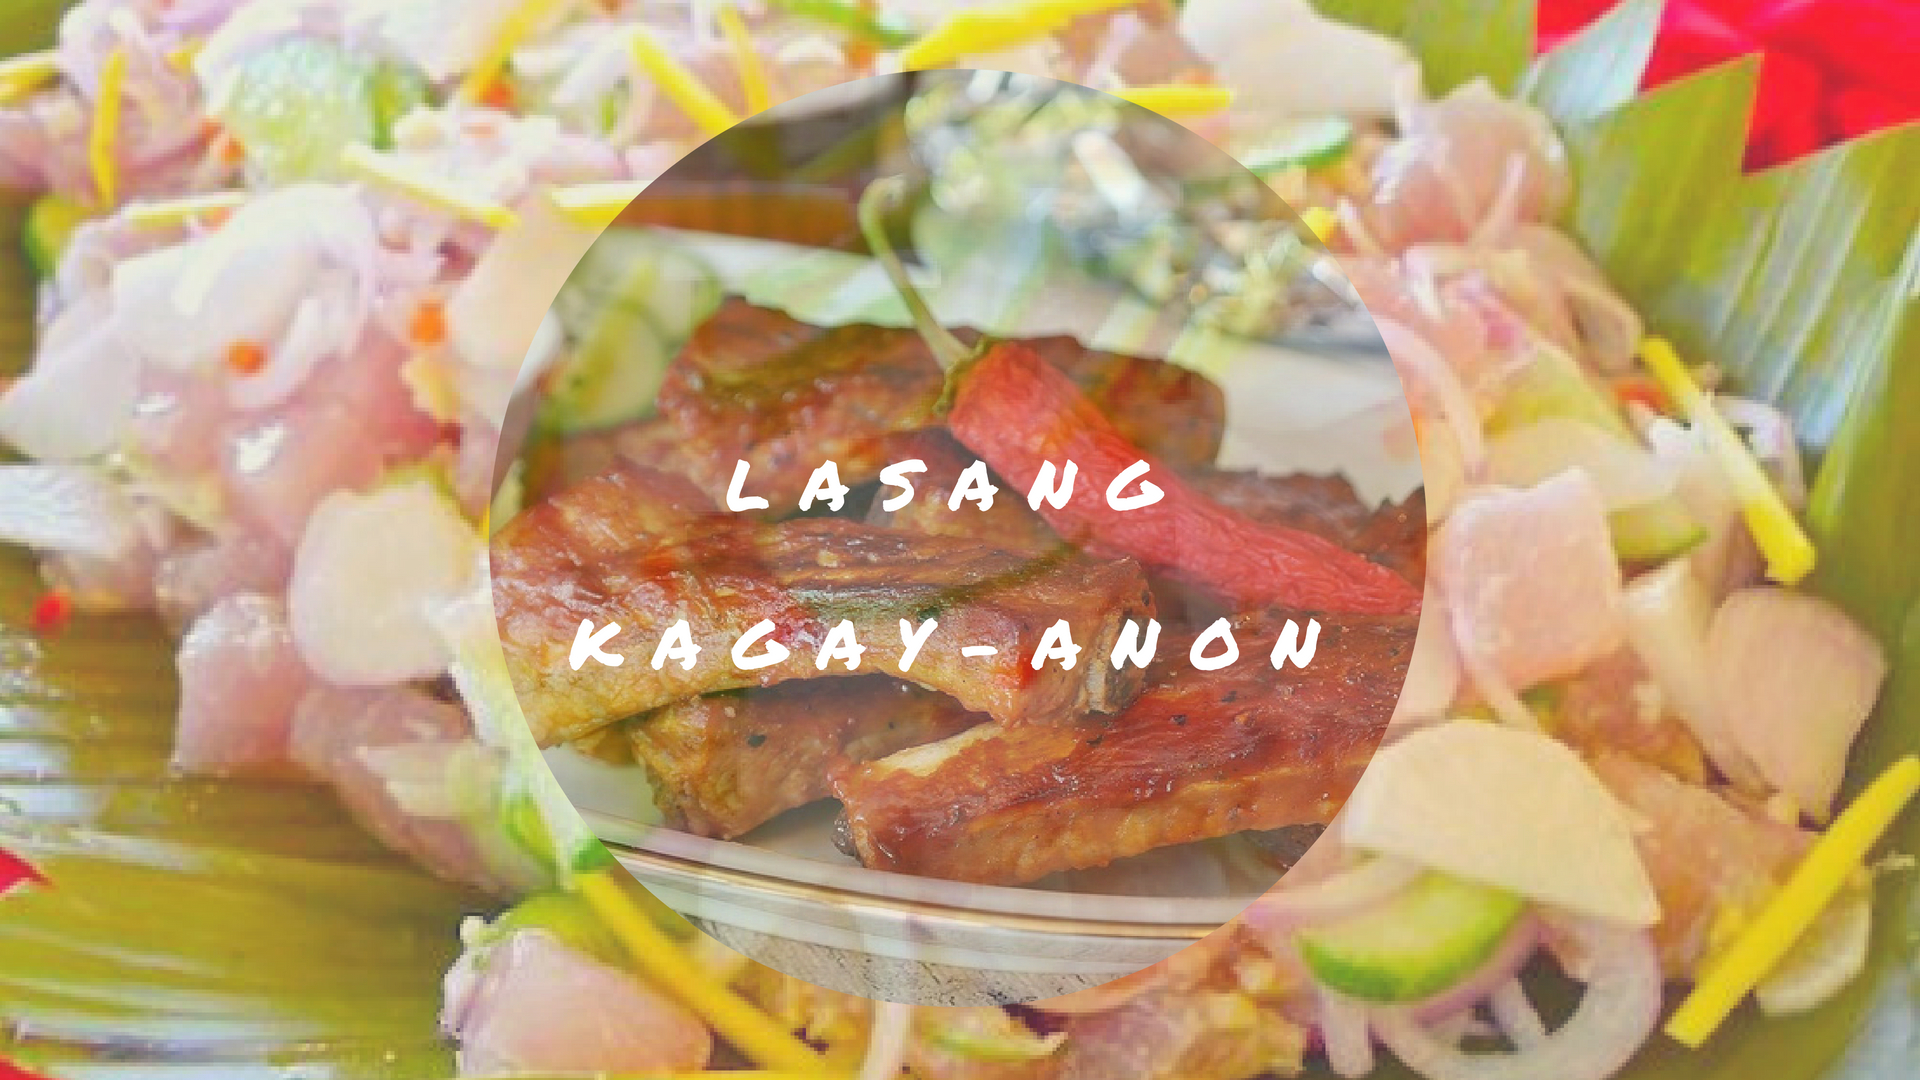 grown kagay-anon